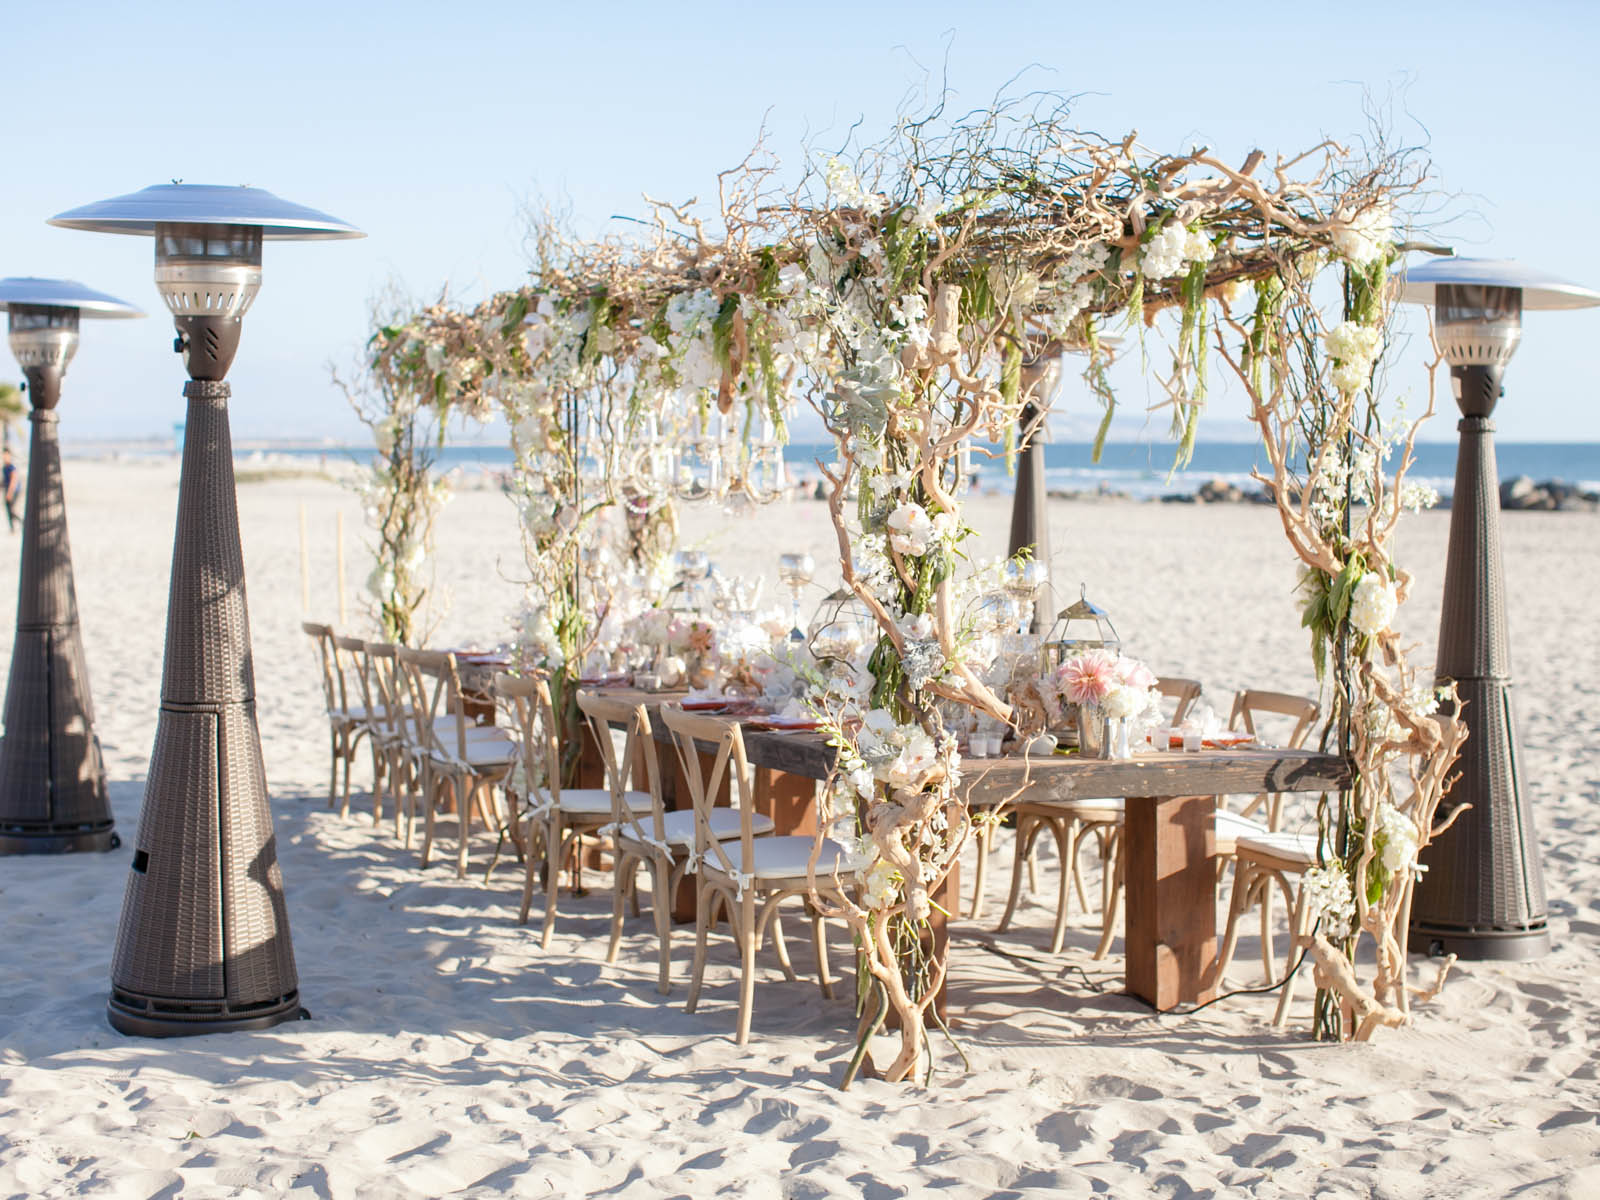 beach_table_decor_1600x1200